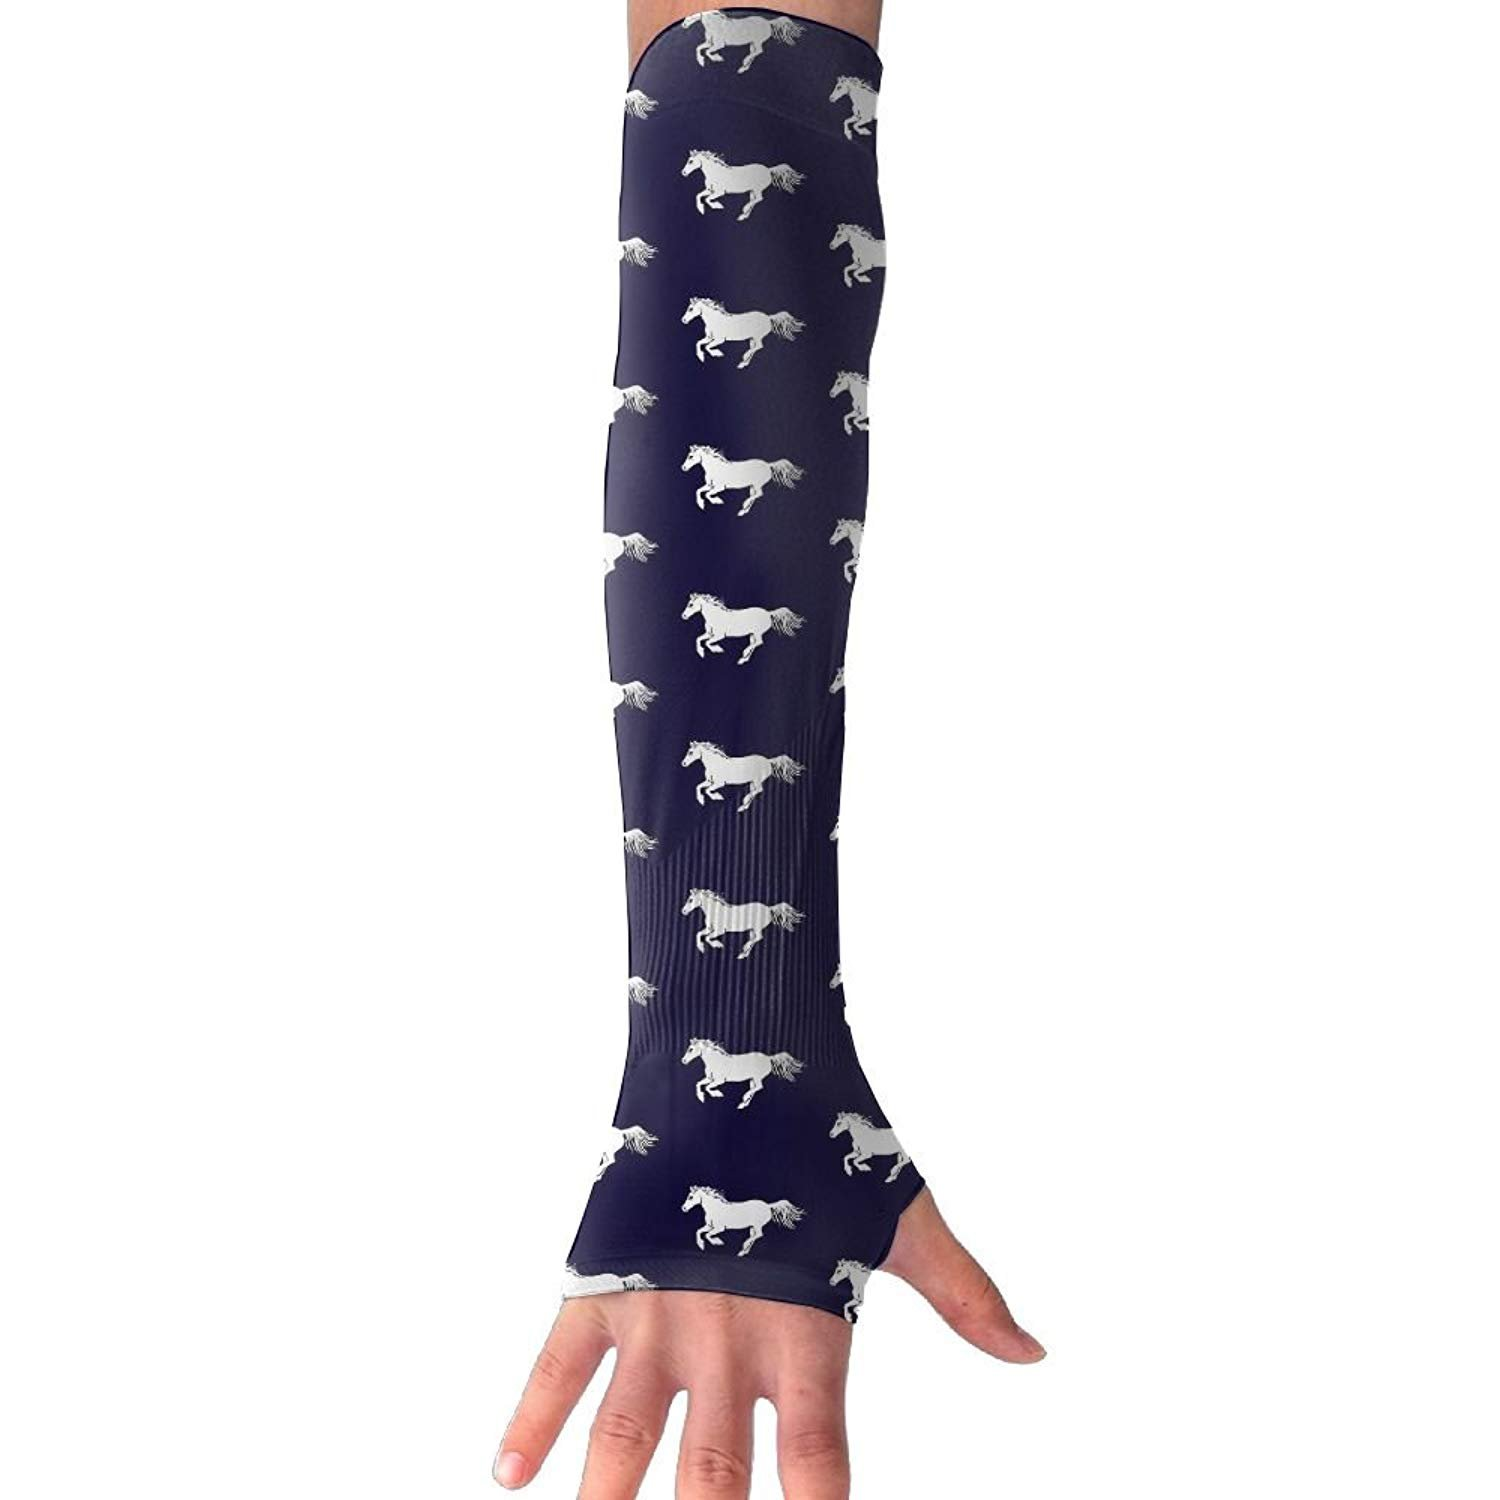 Unisex Red Horses Navy Blue Sunscreen Outdoor Travel Arm Warmer Long Sleeves Glove